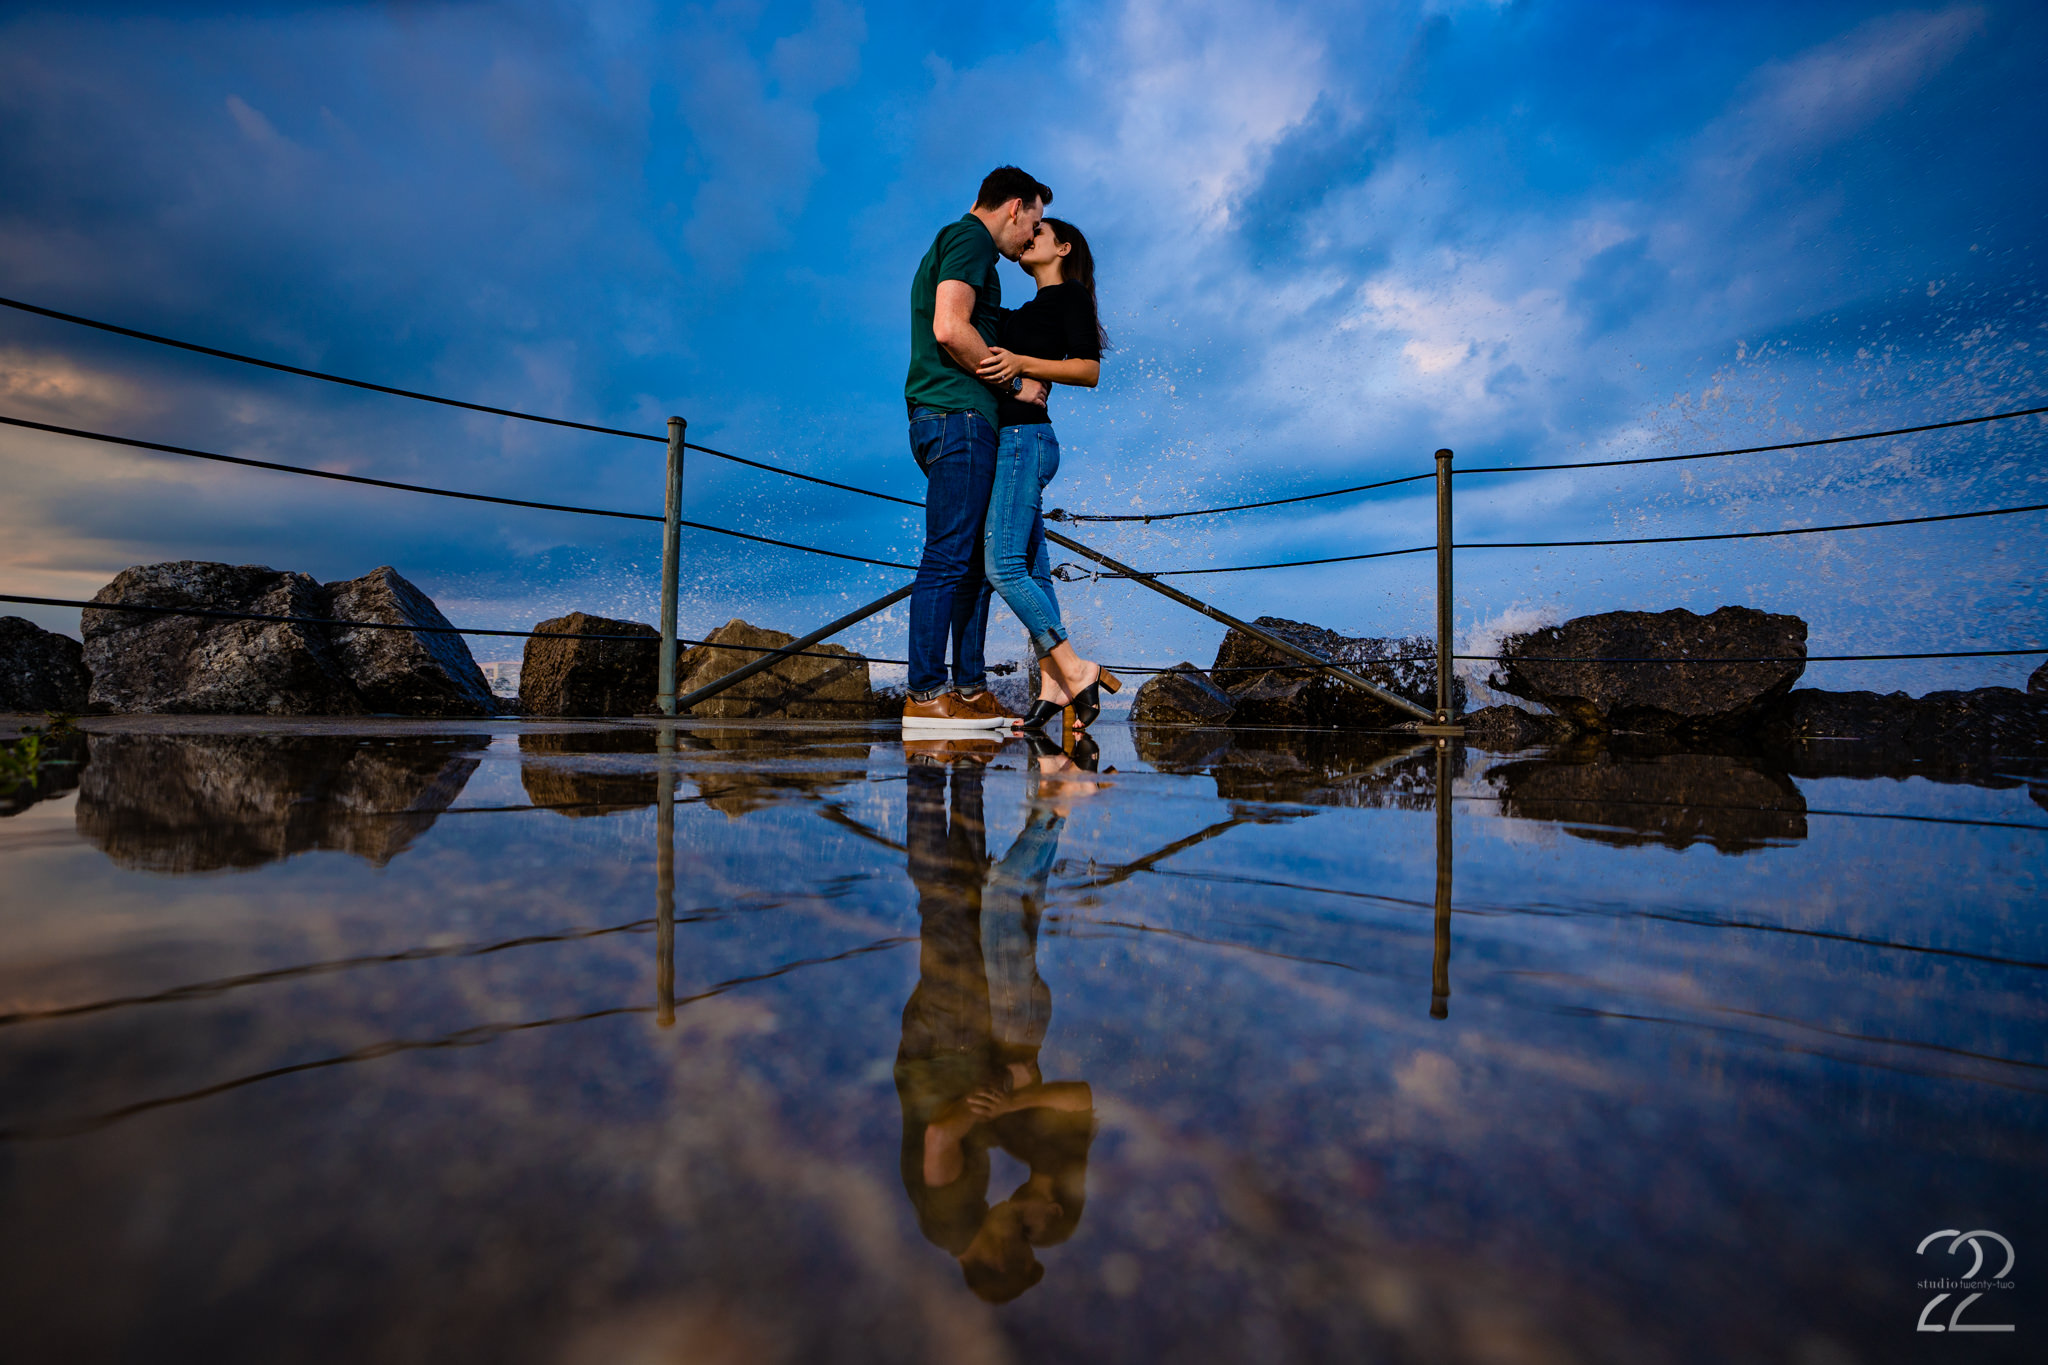 Megan of Studio 22 photography is not afraid to get wet or dirty and loves when couples feel the same. Without willingness of the clients she would never get great surf crashing shots like this!